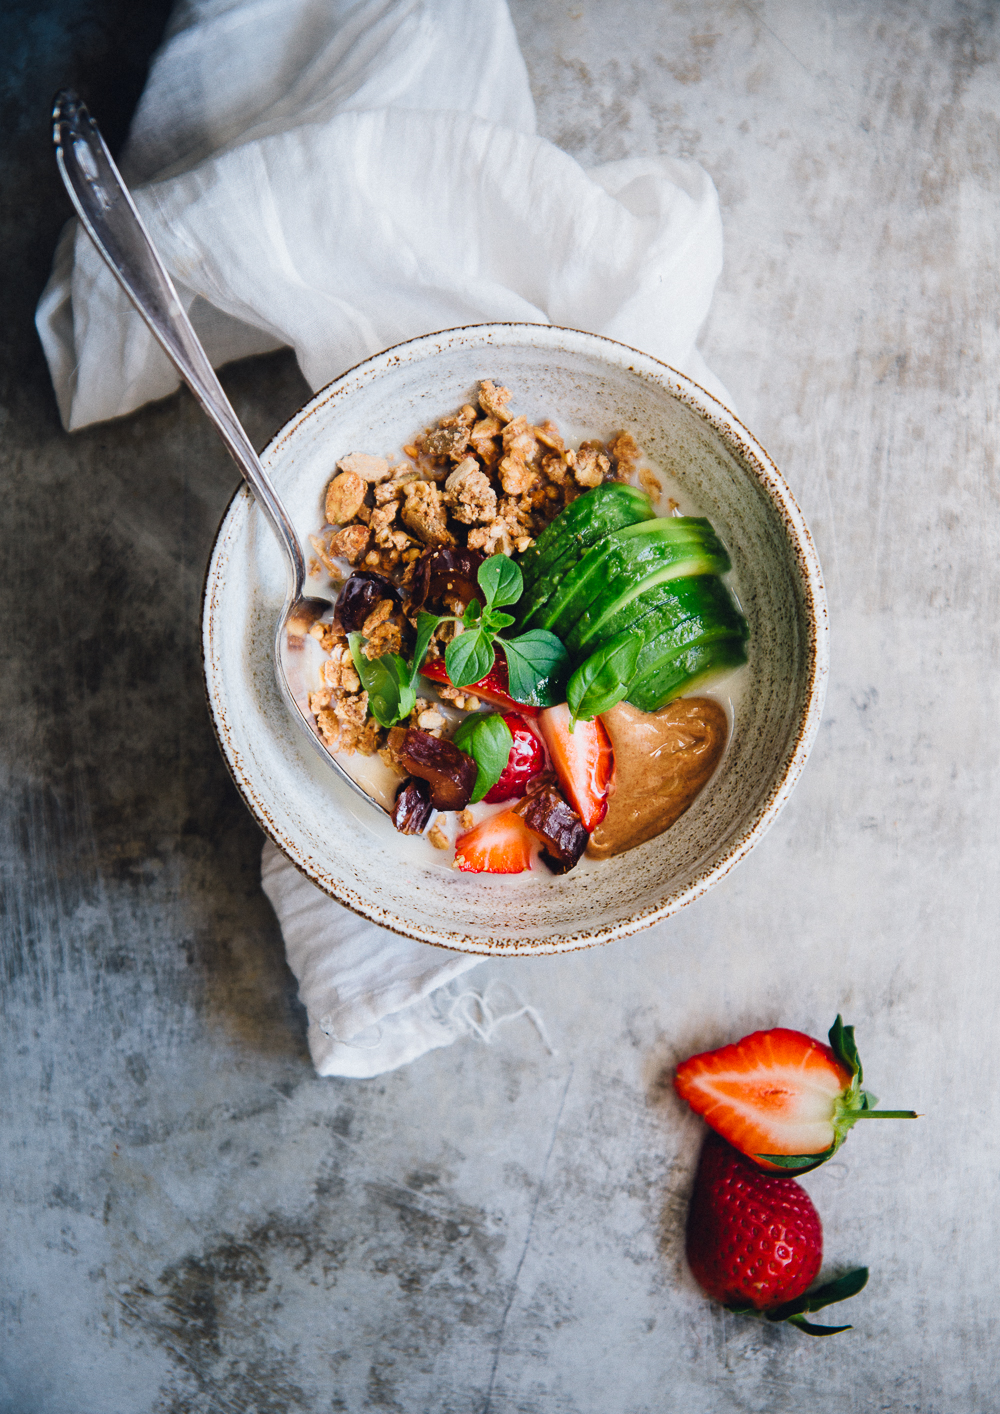 Olive Oil & Buckwheat Crisp Granola with Avocado, Nut Butter & Strawberries | Cashew Kitchen